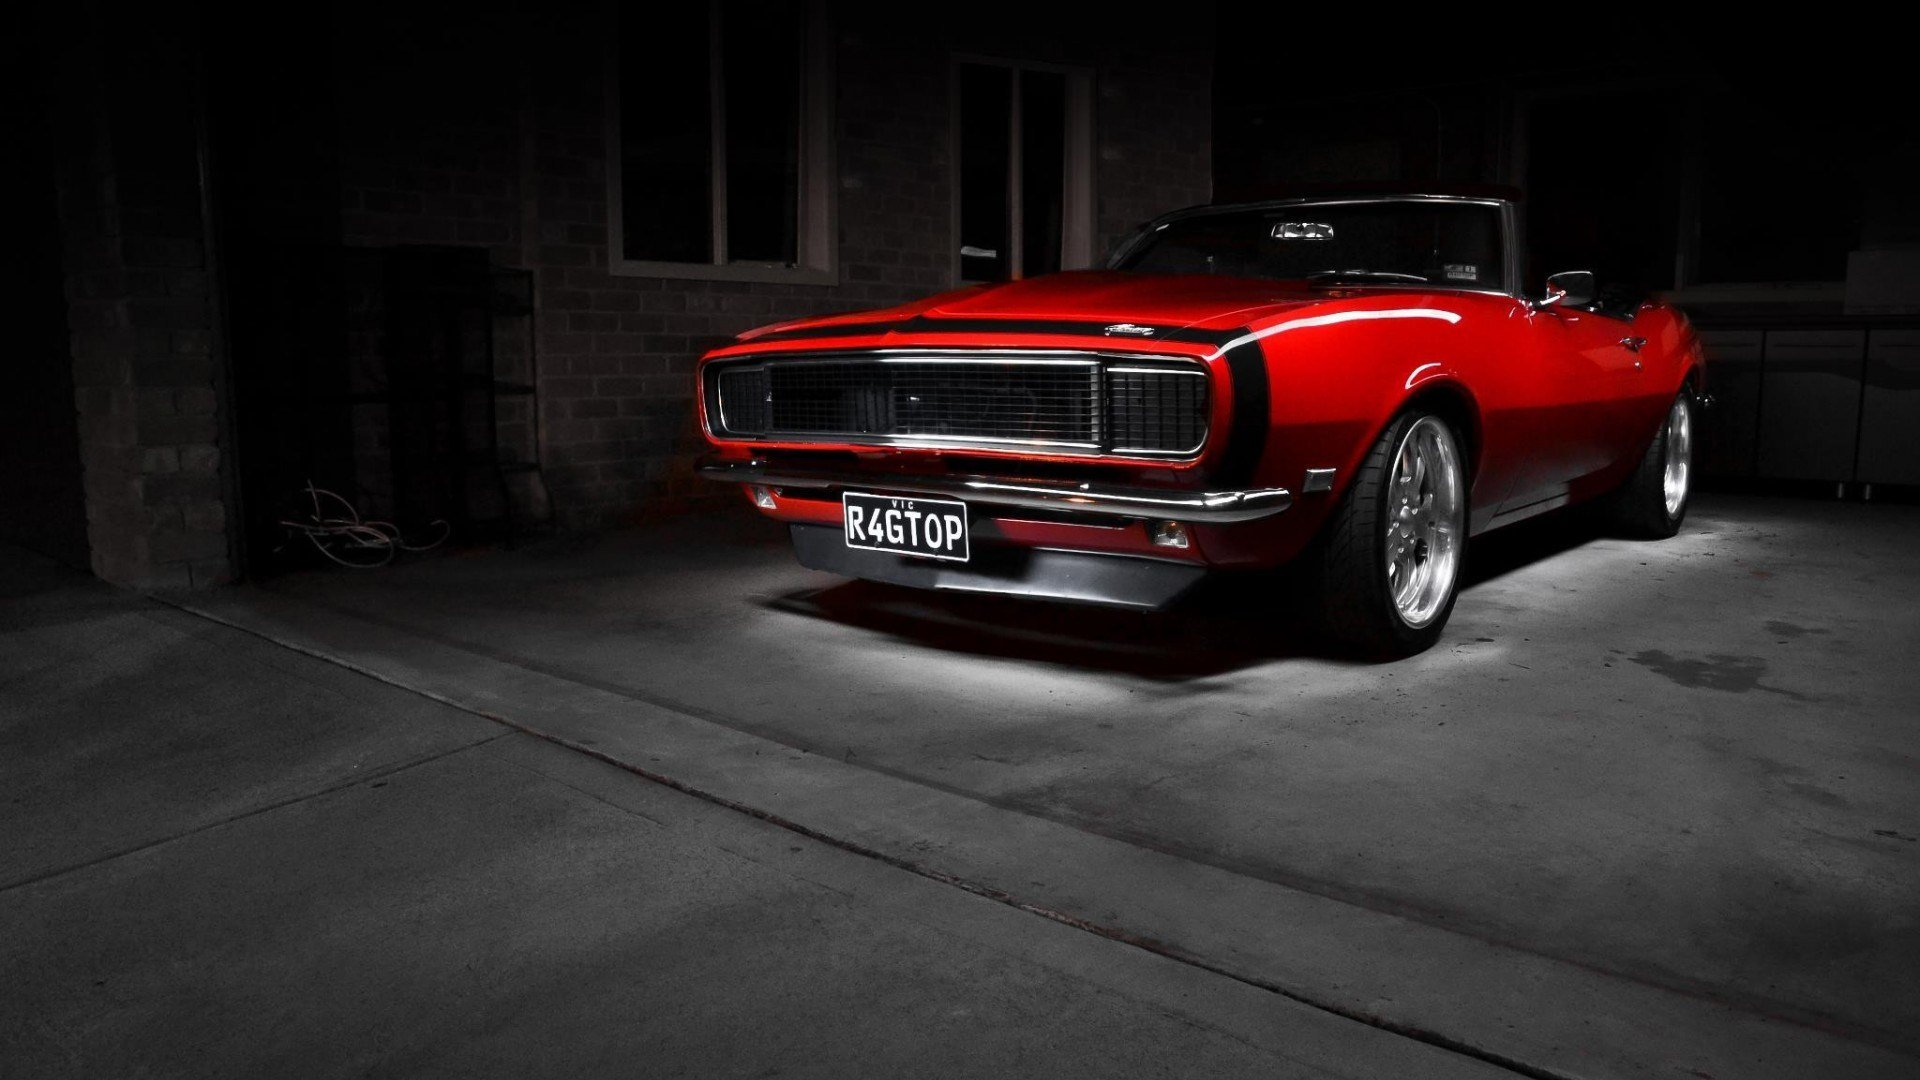 Latest Muscle Cars In 1920X1080 Wallpapers Wallpapersafari Free Download